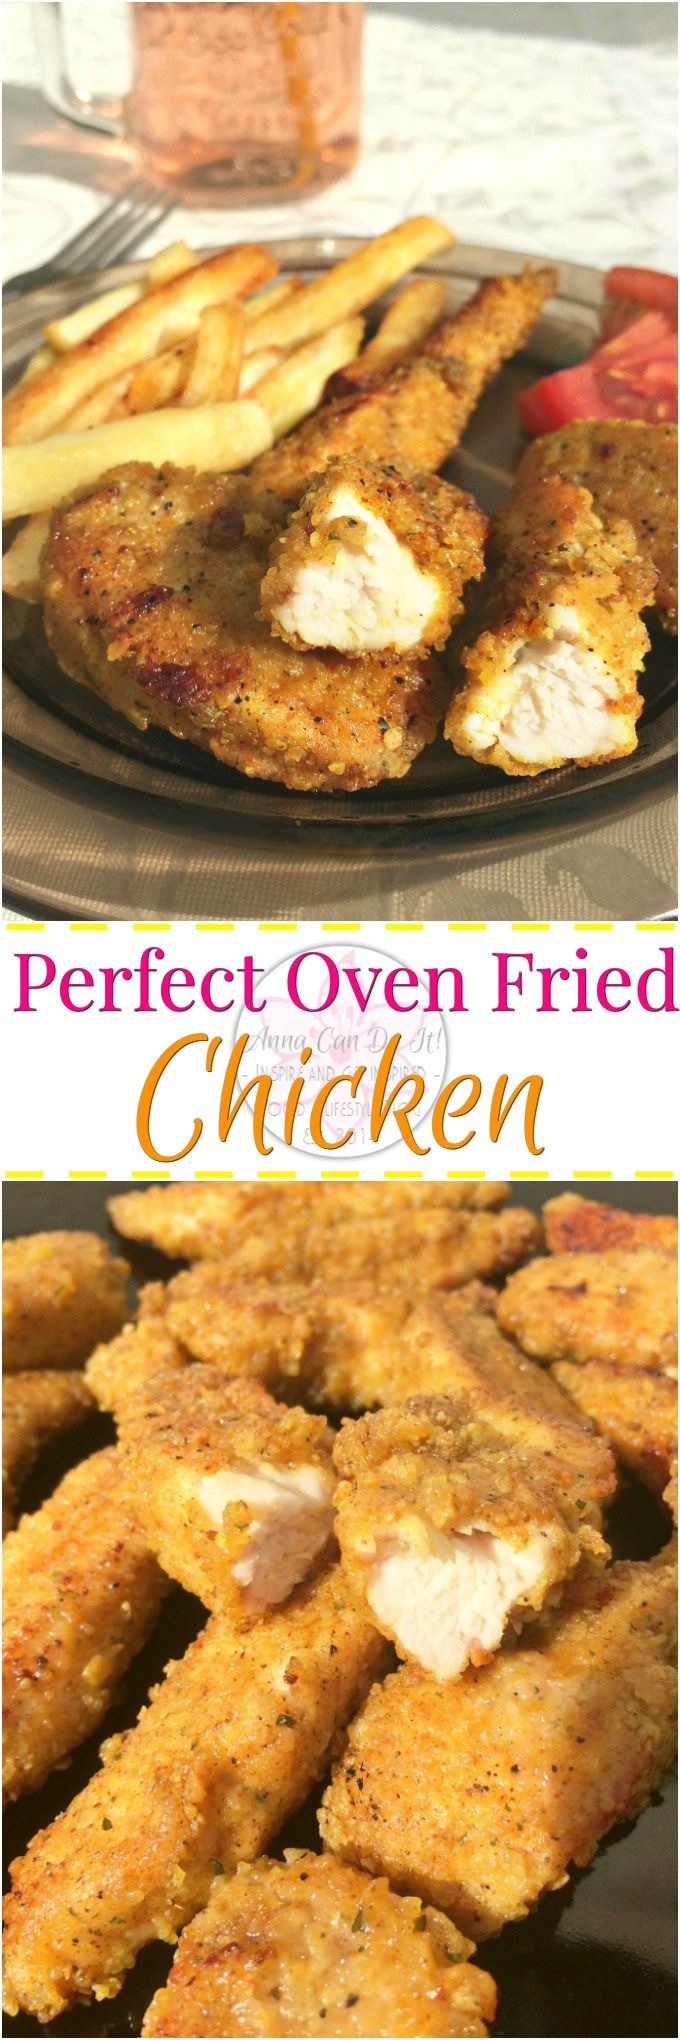 Perfect Oven Fried Chicken - Anna Can Do It! * This Oven Fried Chicken with crunchy breaded outside and juicy, soft inside is just perfect for dinner, lunch and even for a breakfast sandwich. Since it's a freezer friendly recipe, you can make these ahead. Just grab them from the freezer, push them in the oven and within 20 minute you have a delicious meal…